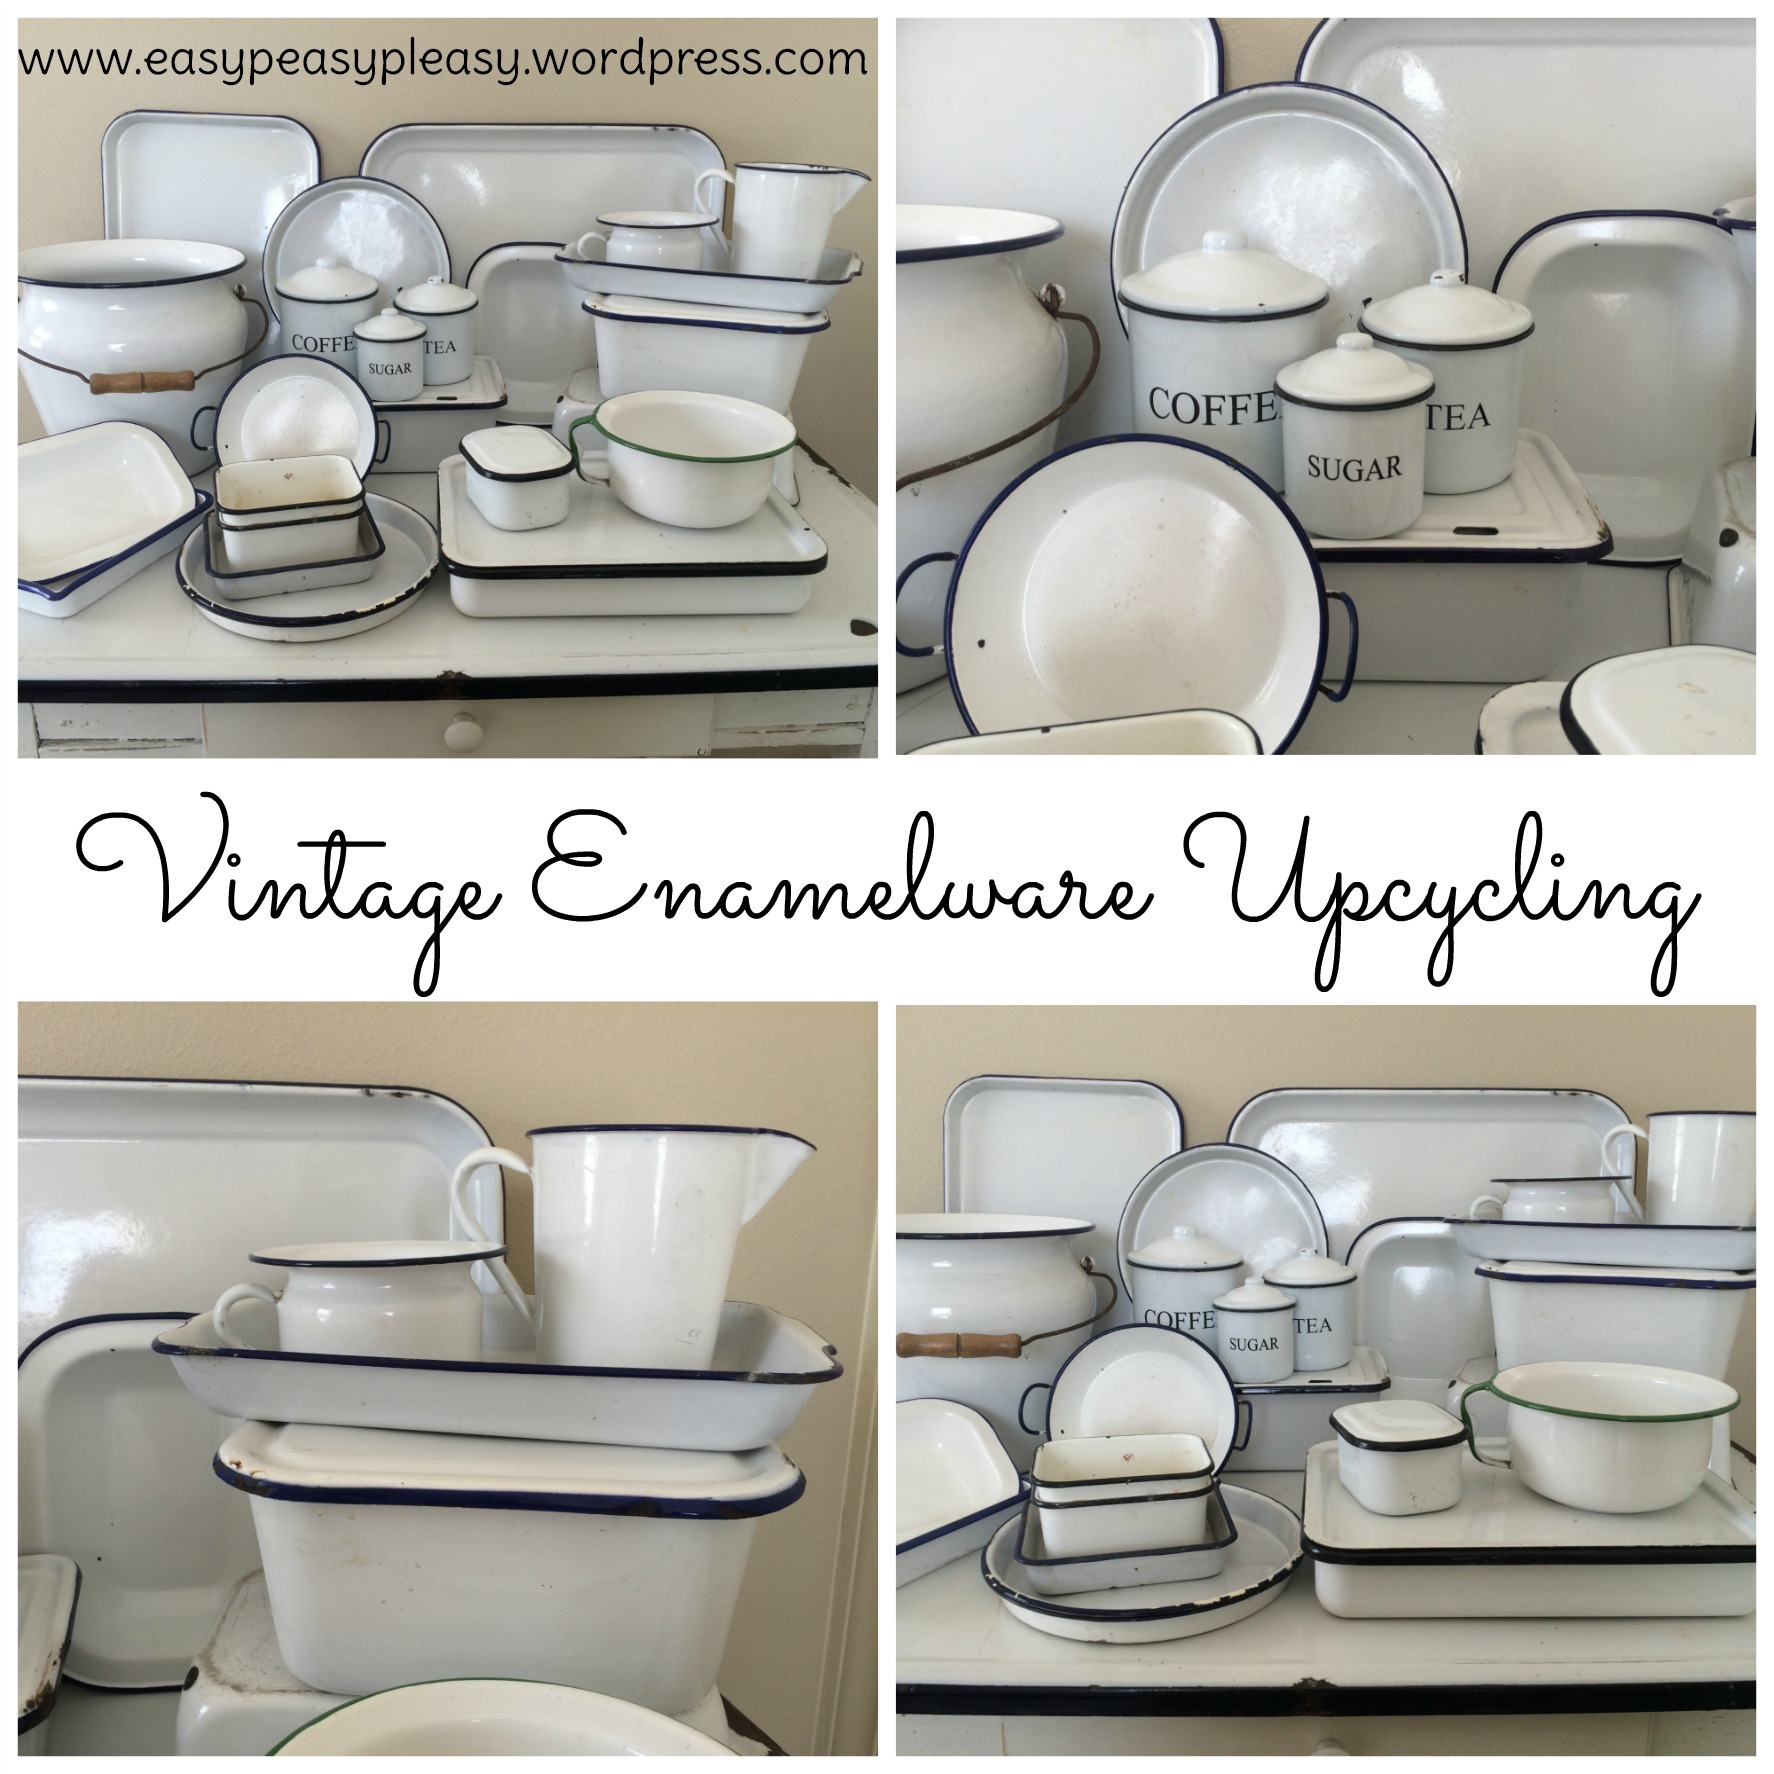 Vintage Enamelware Upcycling ideas for all rooms in the house at https://easypeasypleasy.com